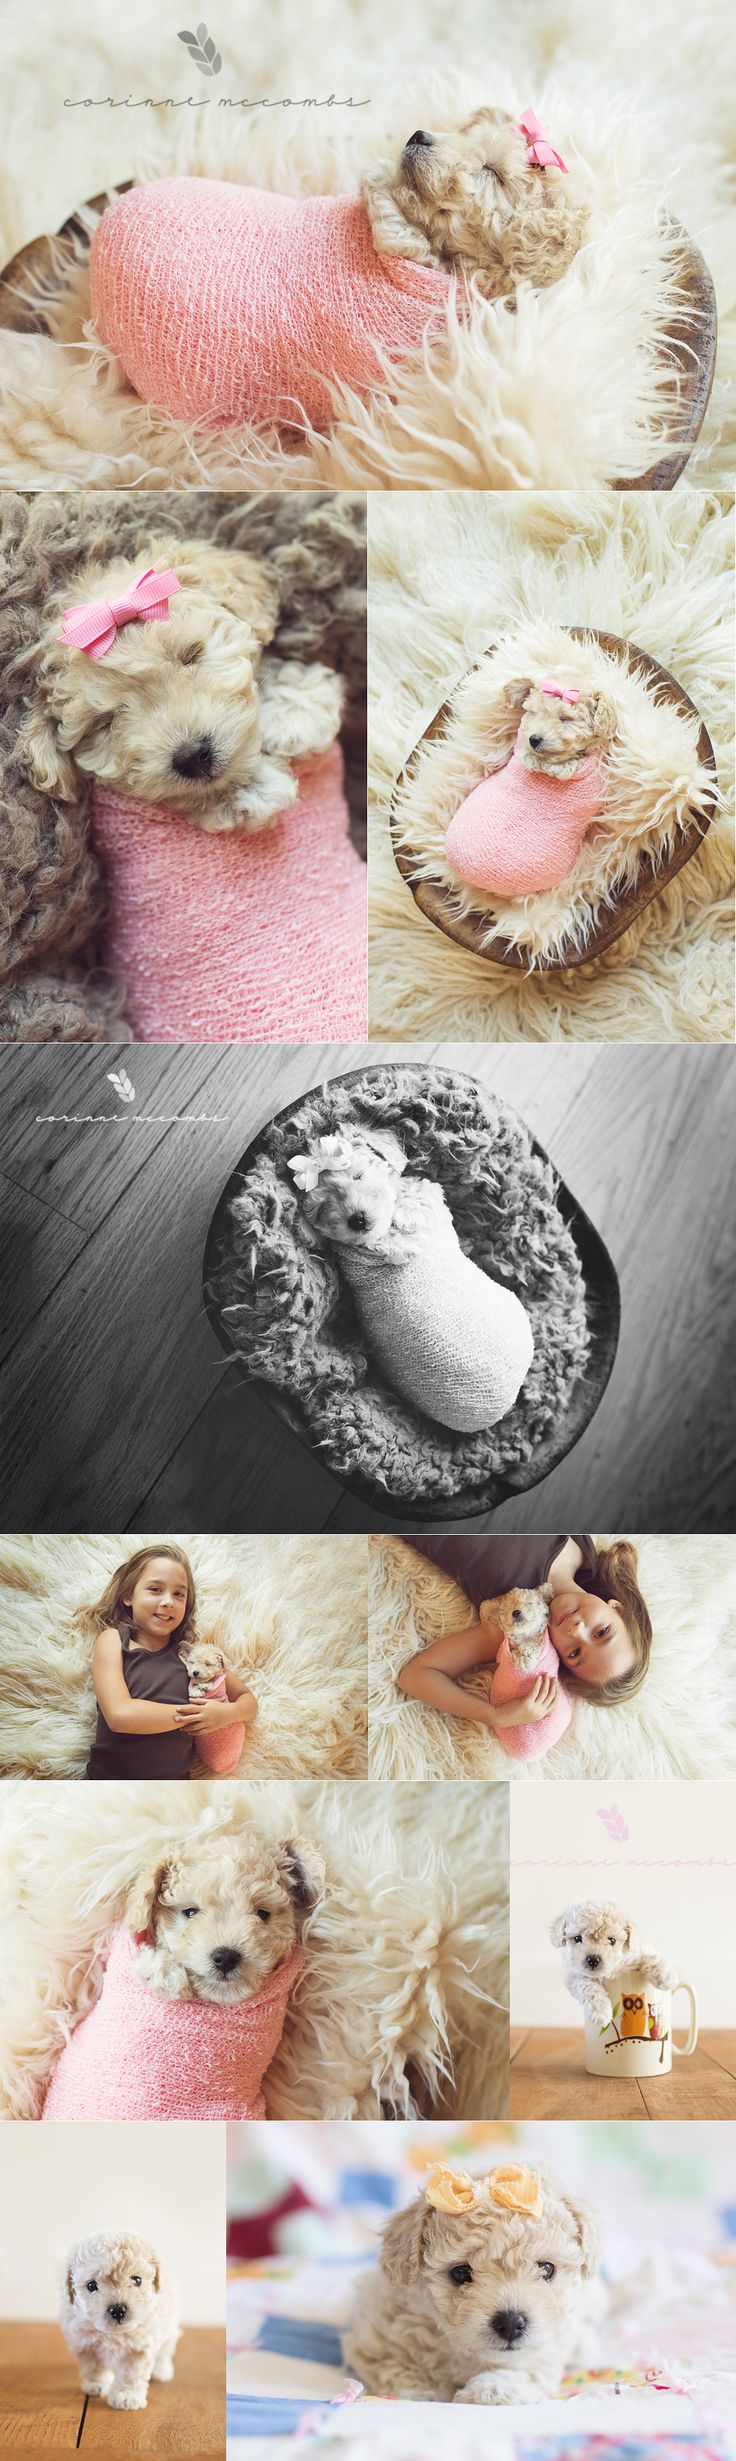 So much cuteness! Newborn session of a puppy! Shot by the amazing Corinne Mccombs! Photo shoot poodle baby cute adorable